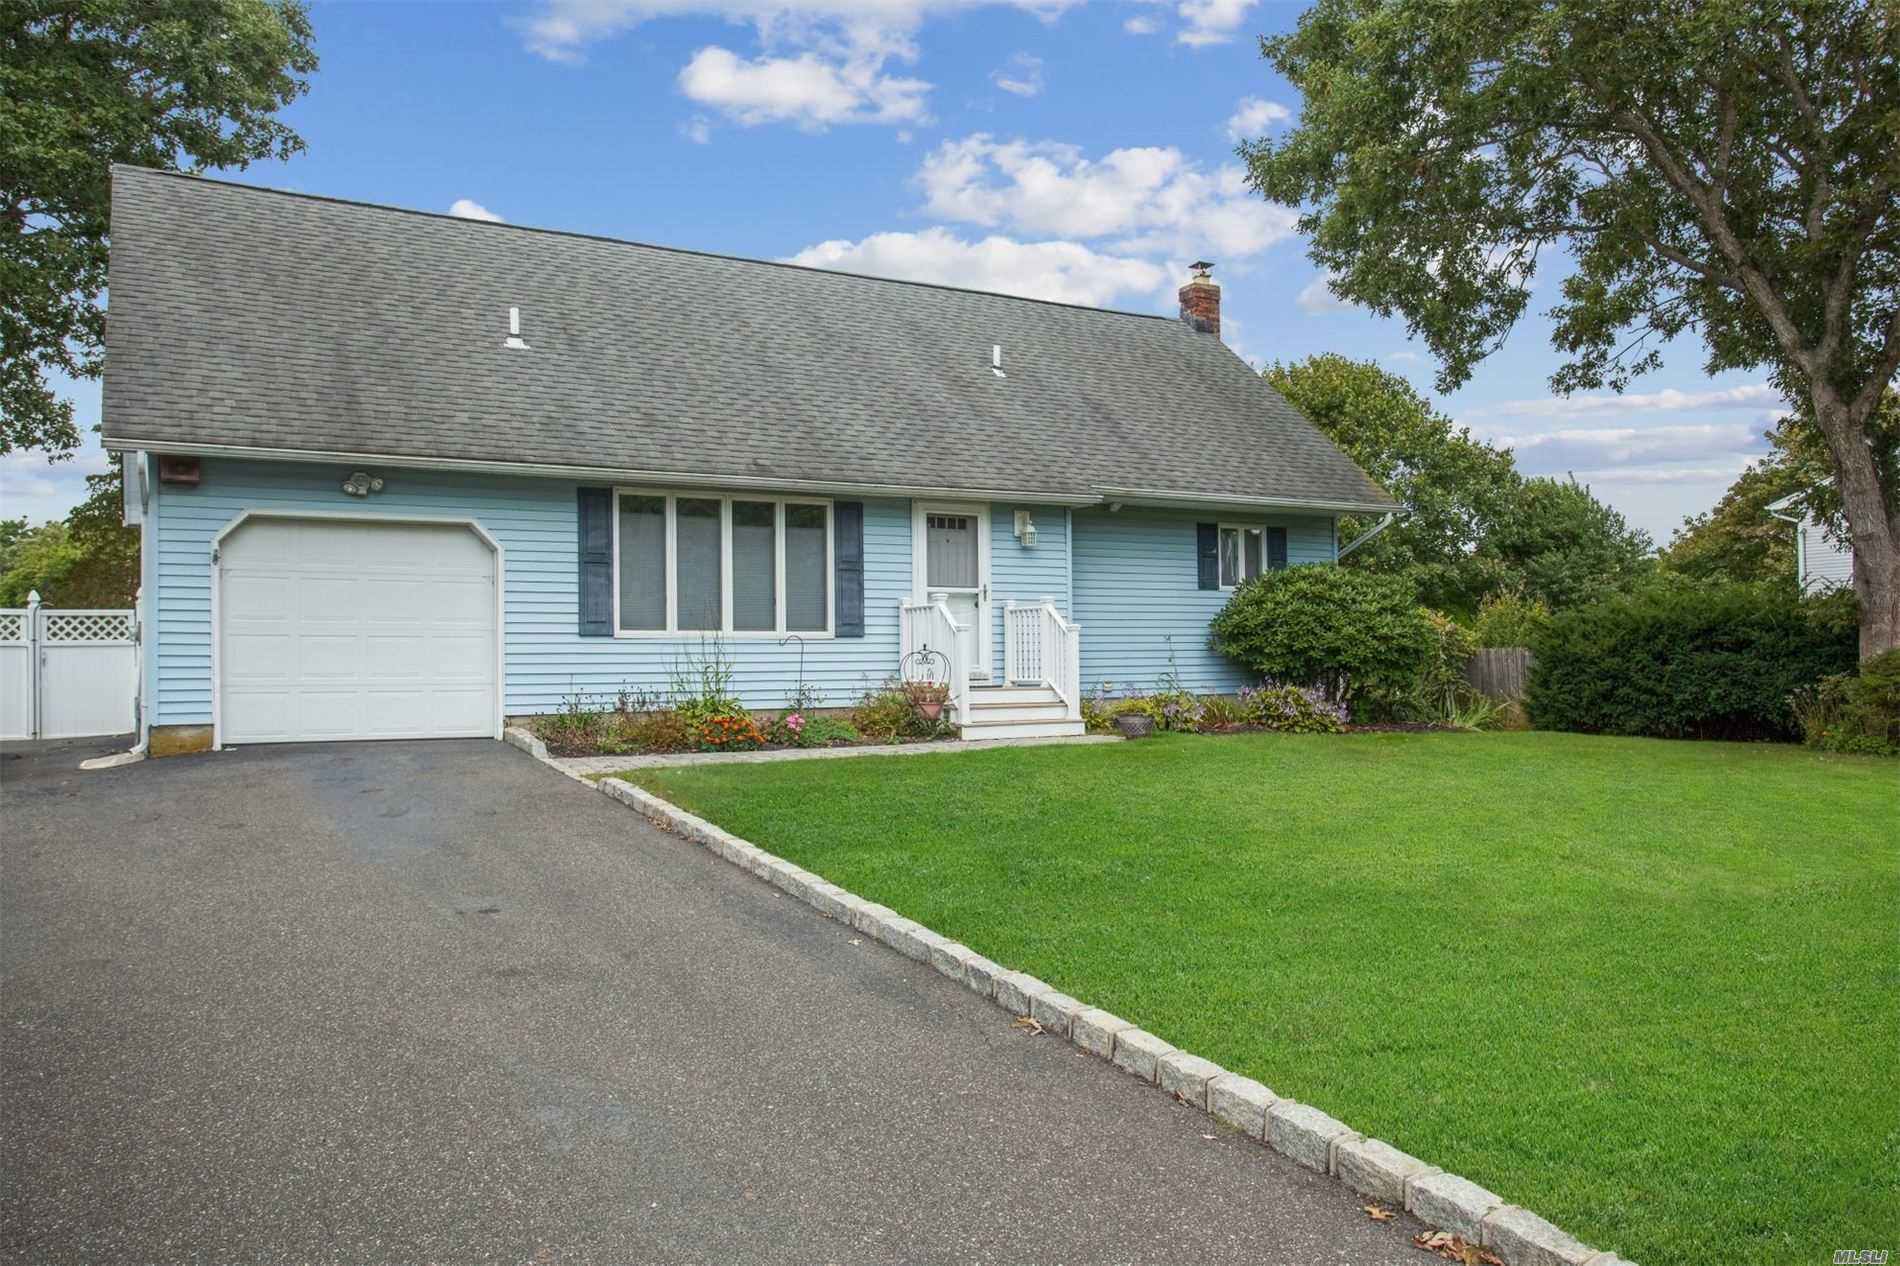 61 Camille Ln - E. Patchogue, New York